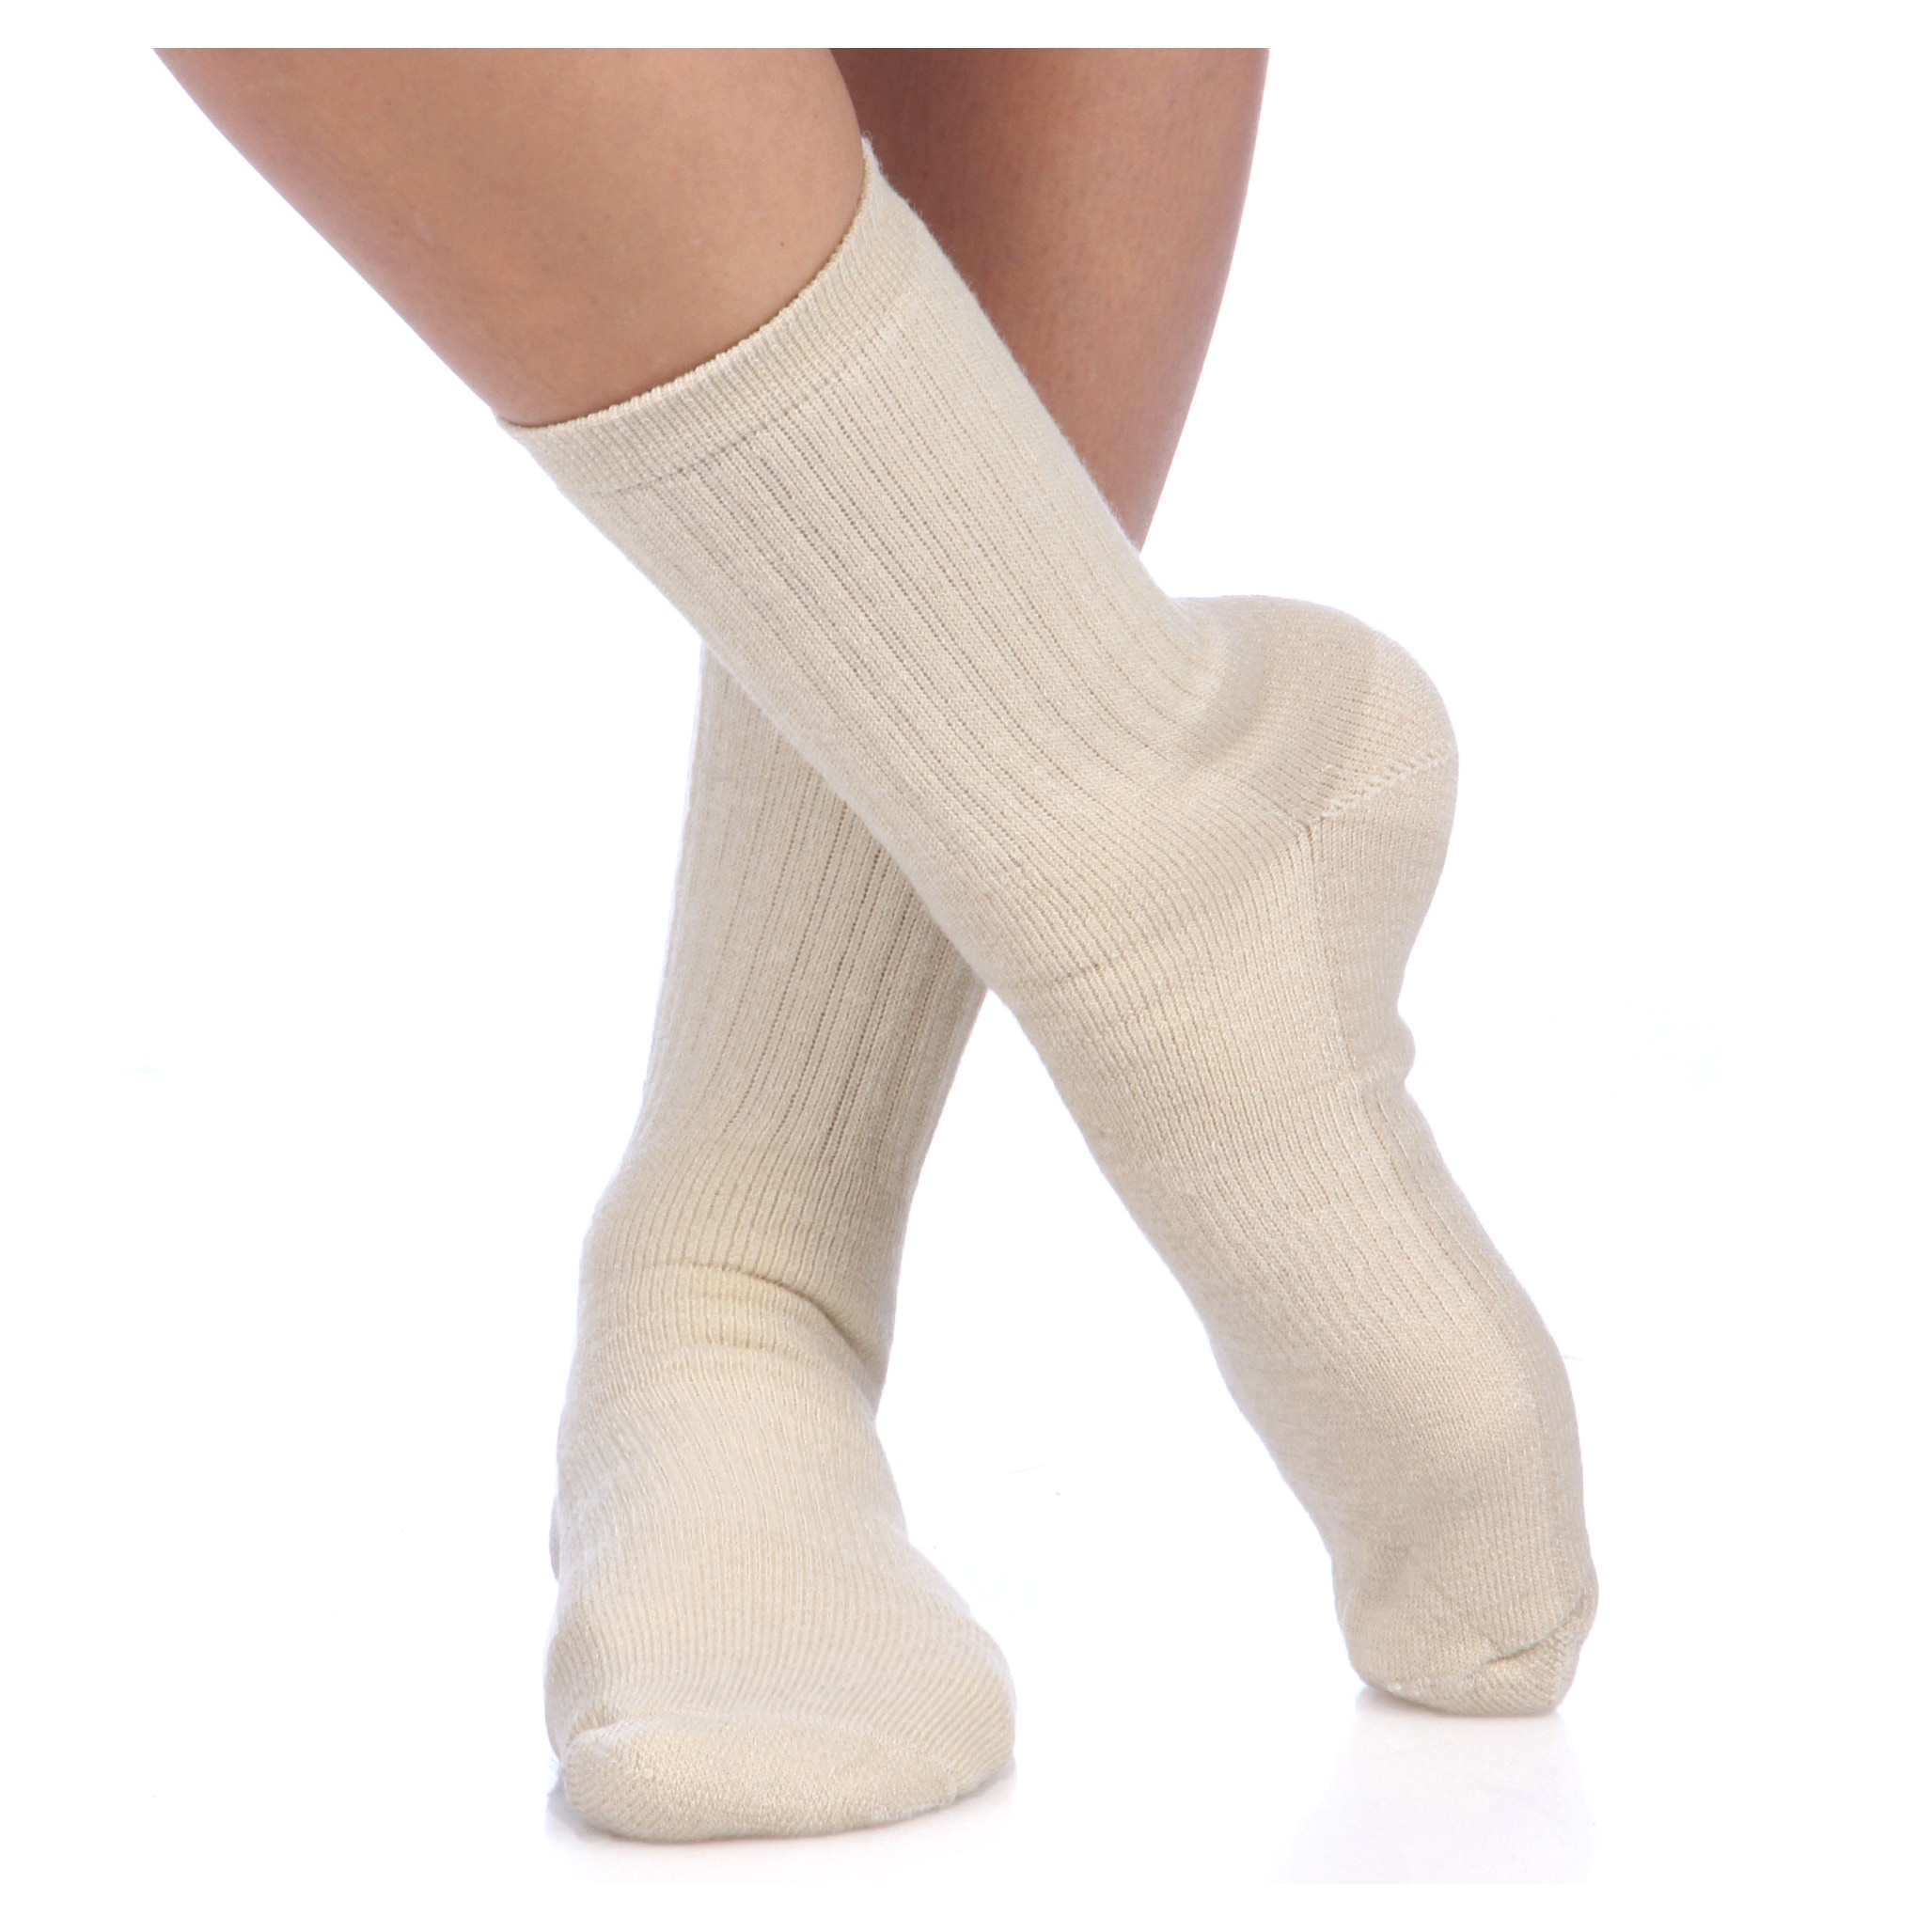 Smart Socks Tan Merino Wool Crew Hiking Socks (Pack of 3)...